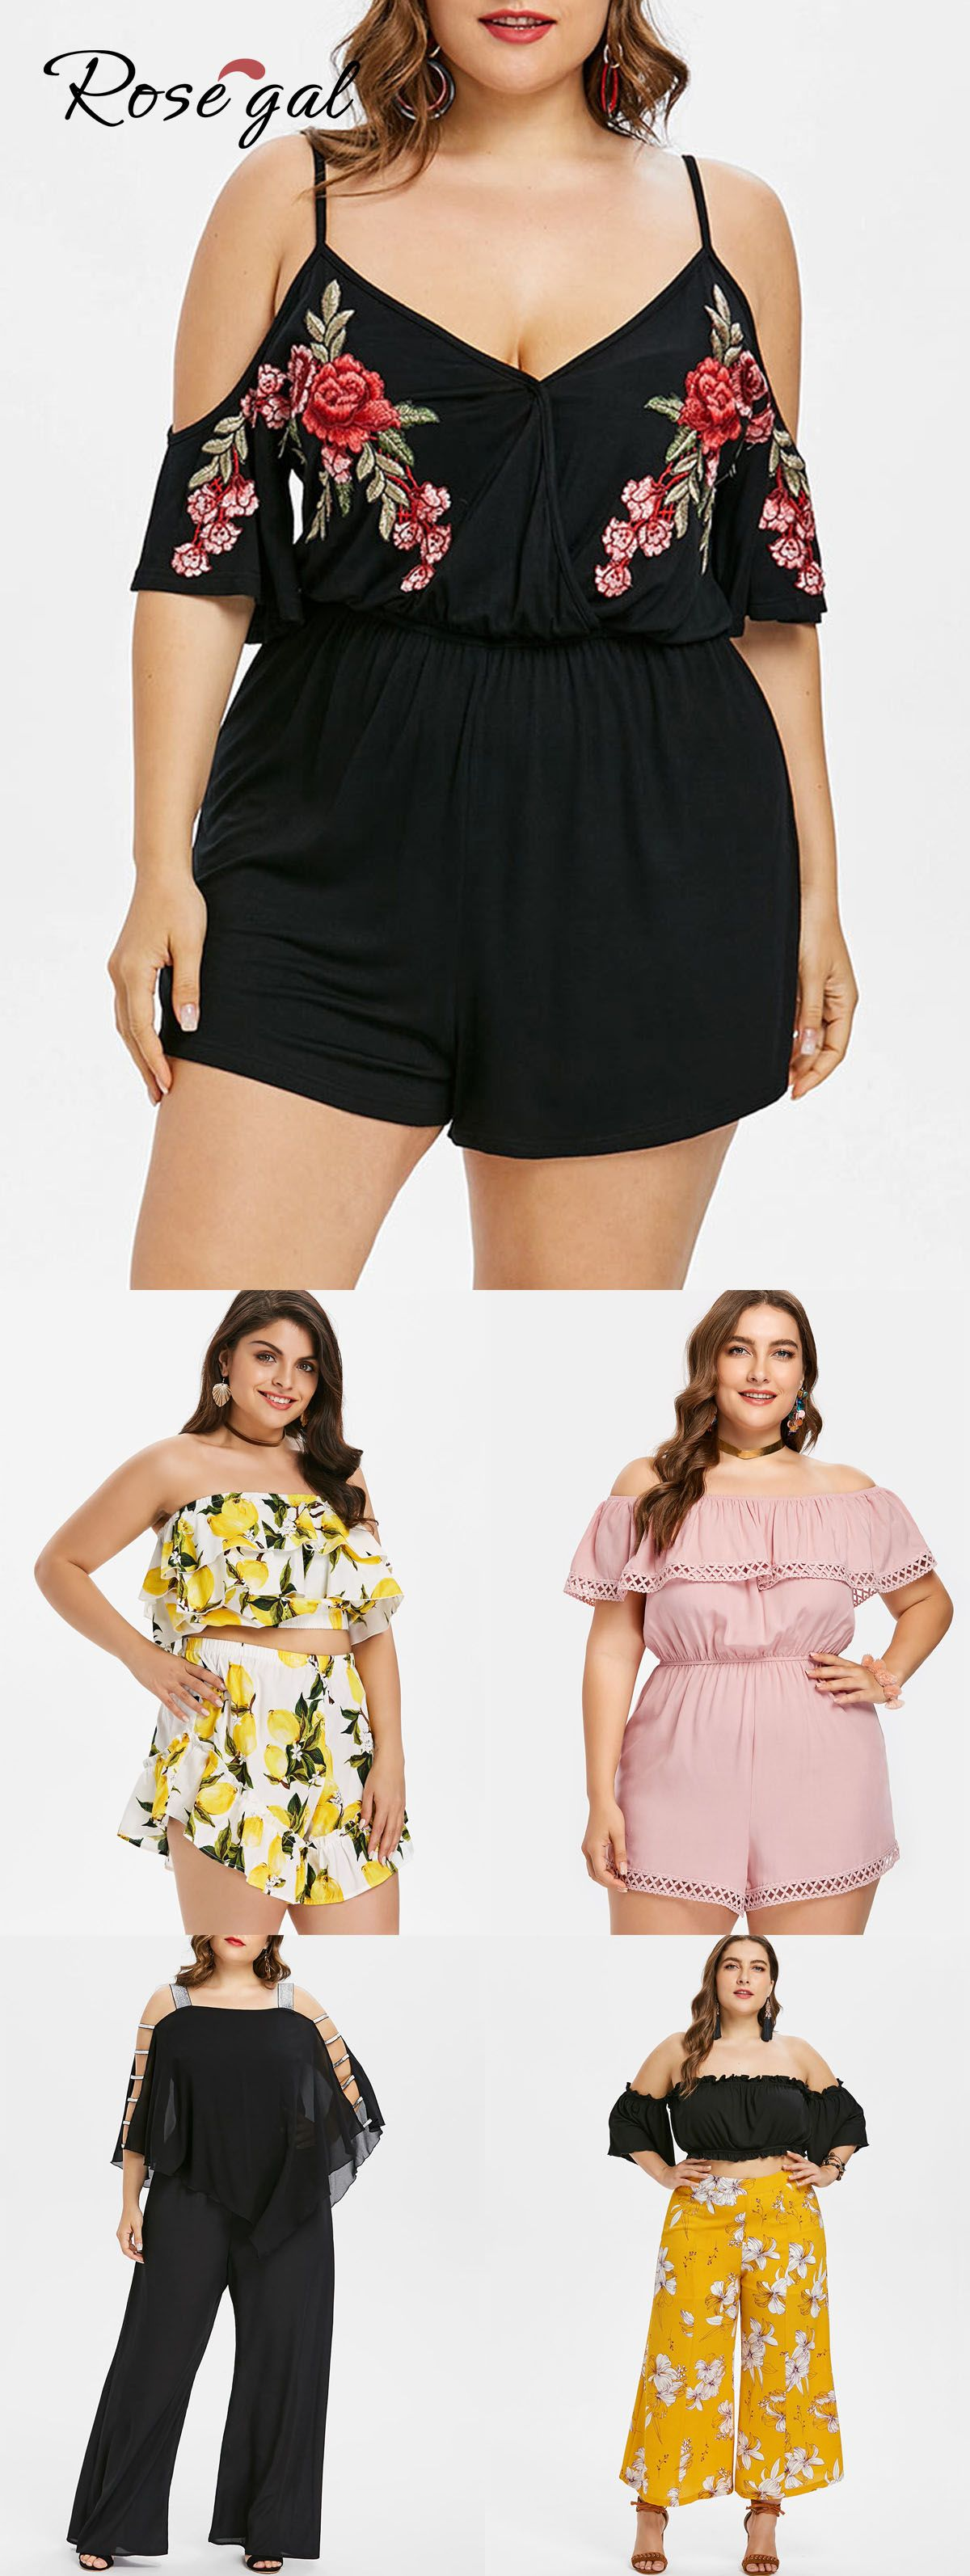 Photo of Free shipment worldwide, up to 70% off, ROSEGAL plus size rompers and jumpsuits …